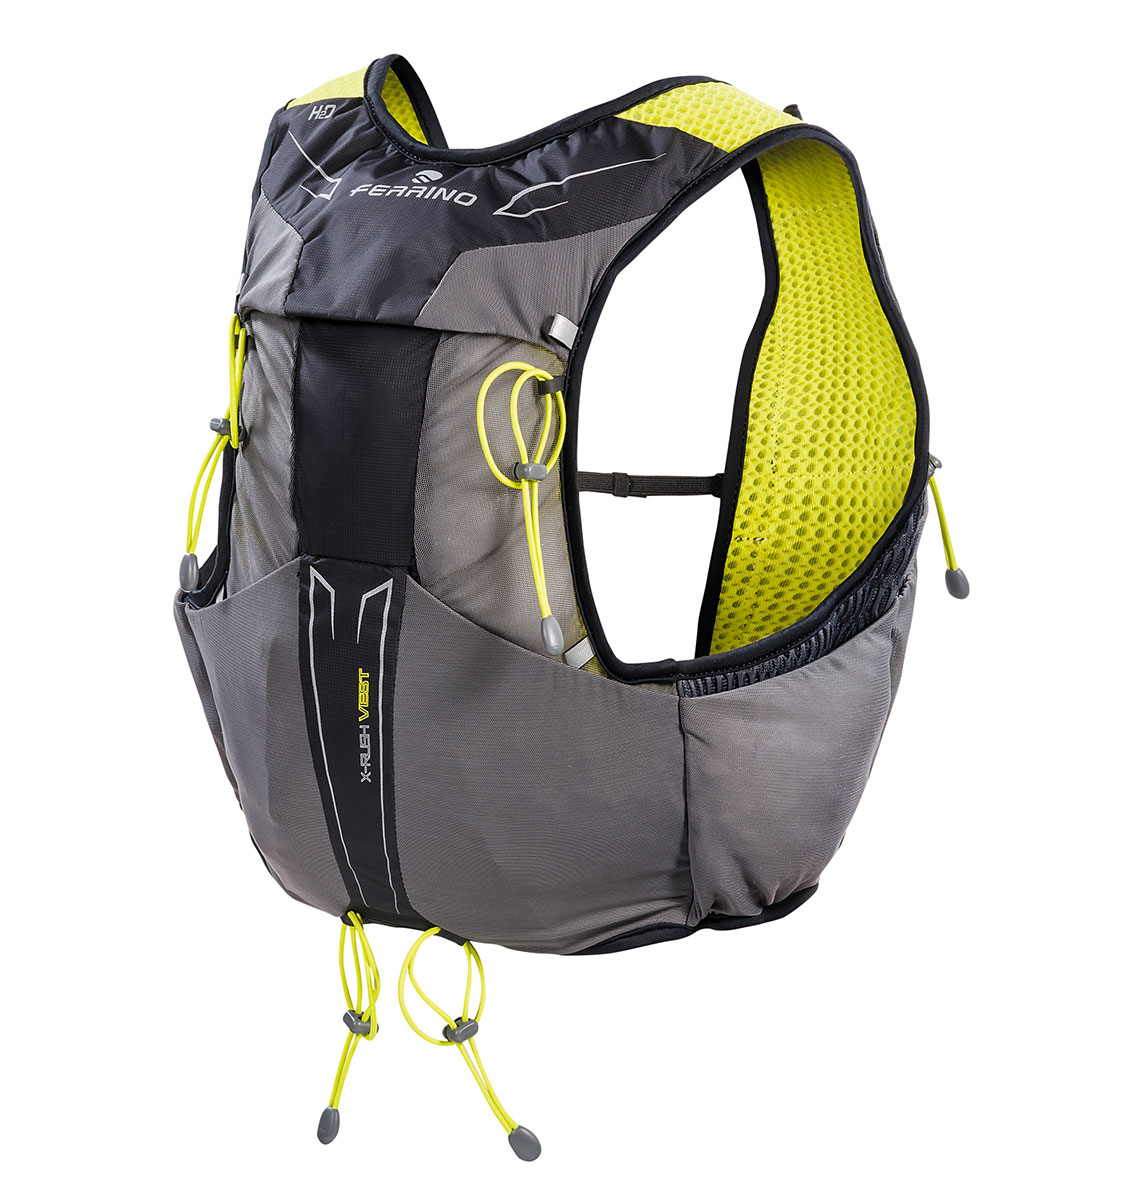 Trail running backpack X-Rush Vest by Ferrino completes its range of trail running backpacks to satisfy the athletes in their most extreme races.